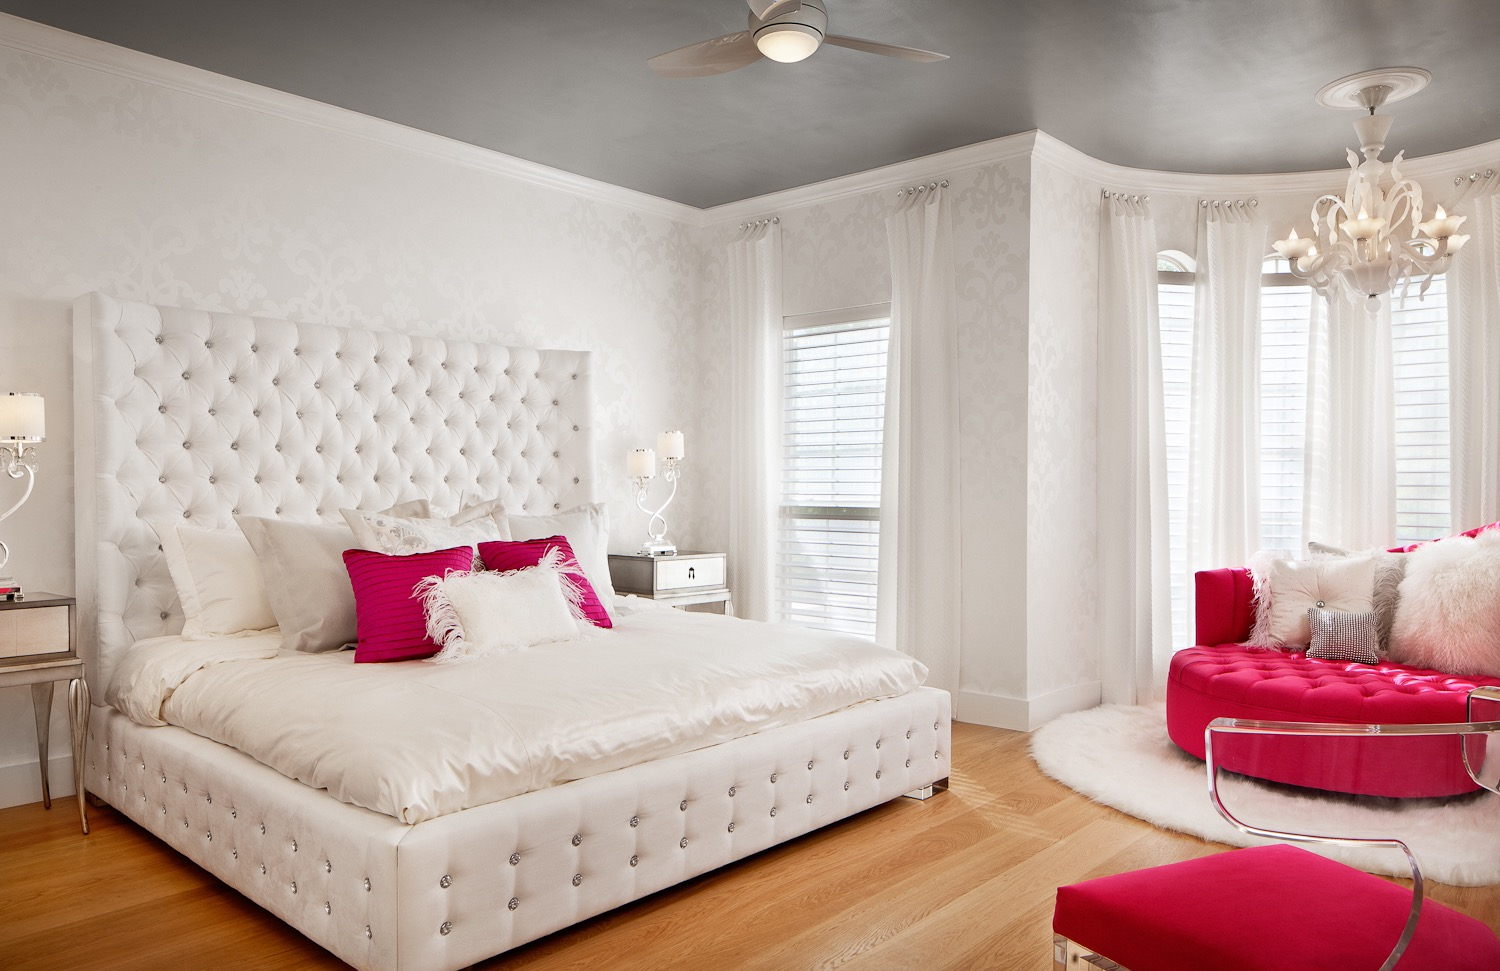 Glamour And Luxury Teen Girls Bedroom With White Tufted Bed (Image 17 of 30)